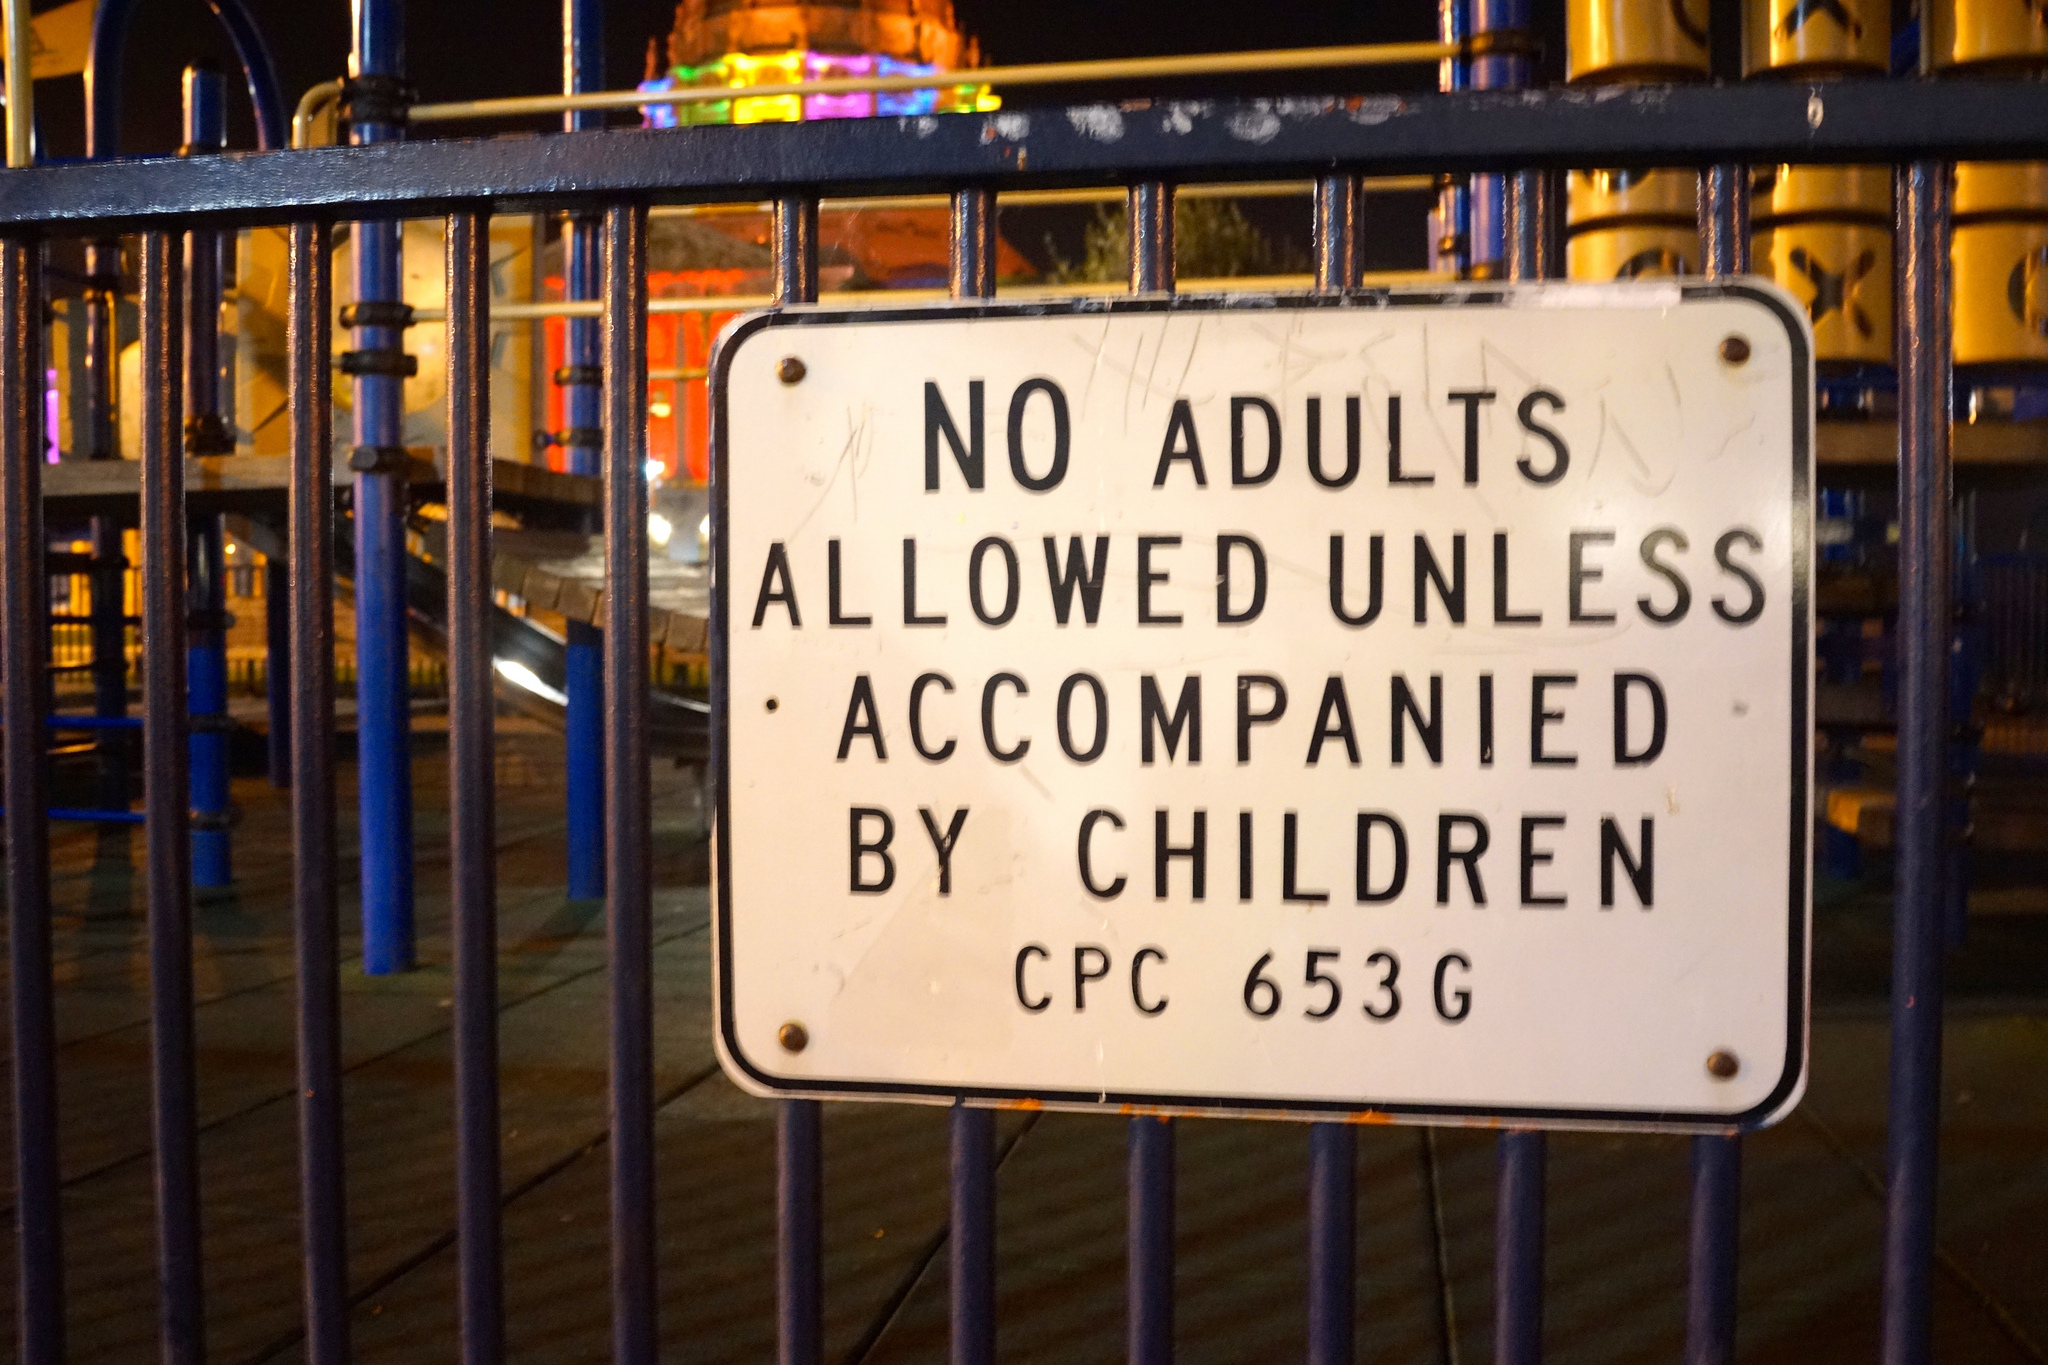 A sign next to a children's play area reading No Adults Allowed Unless Accompanied By Children